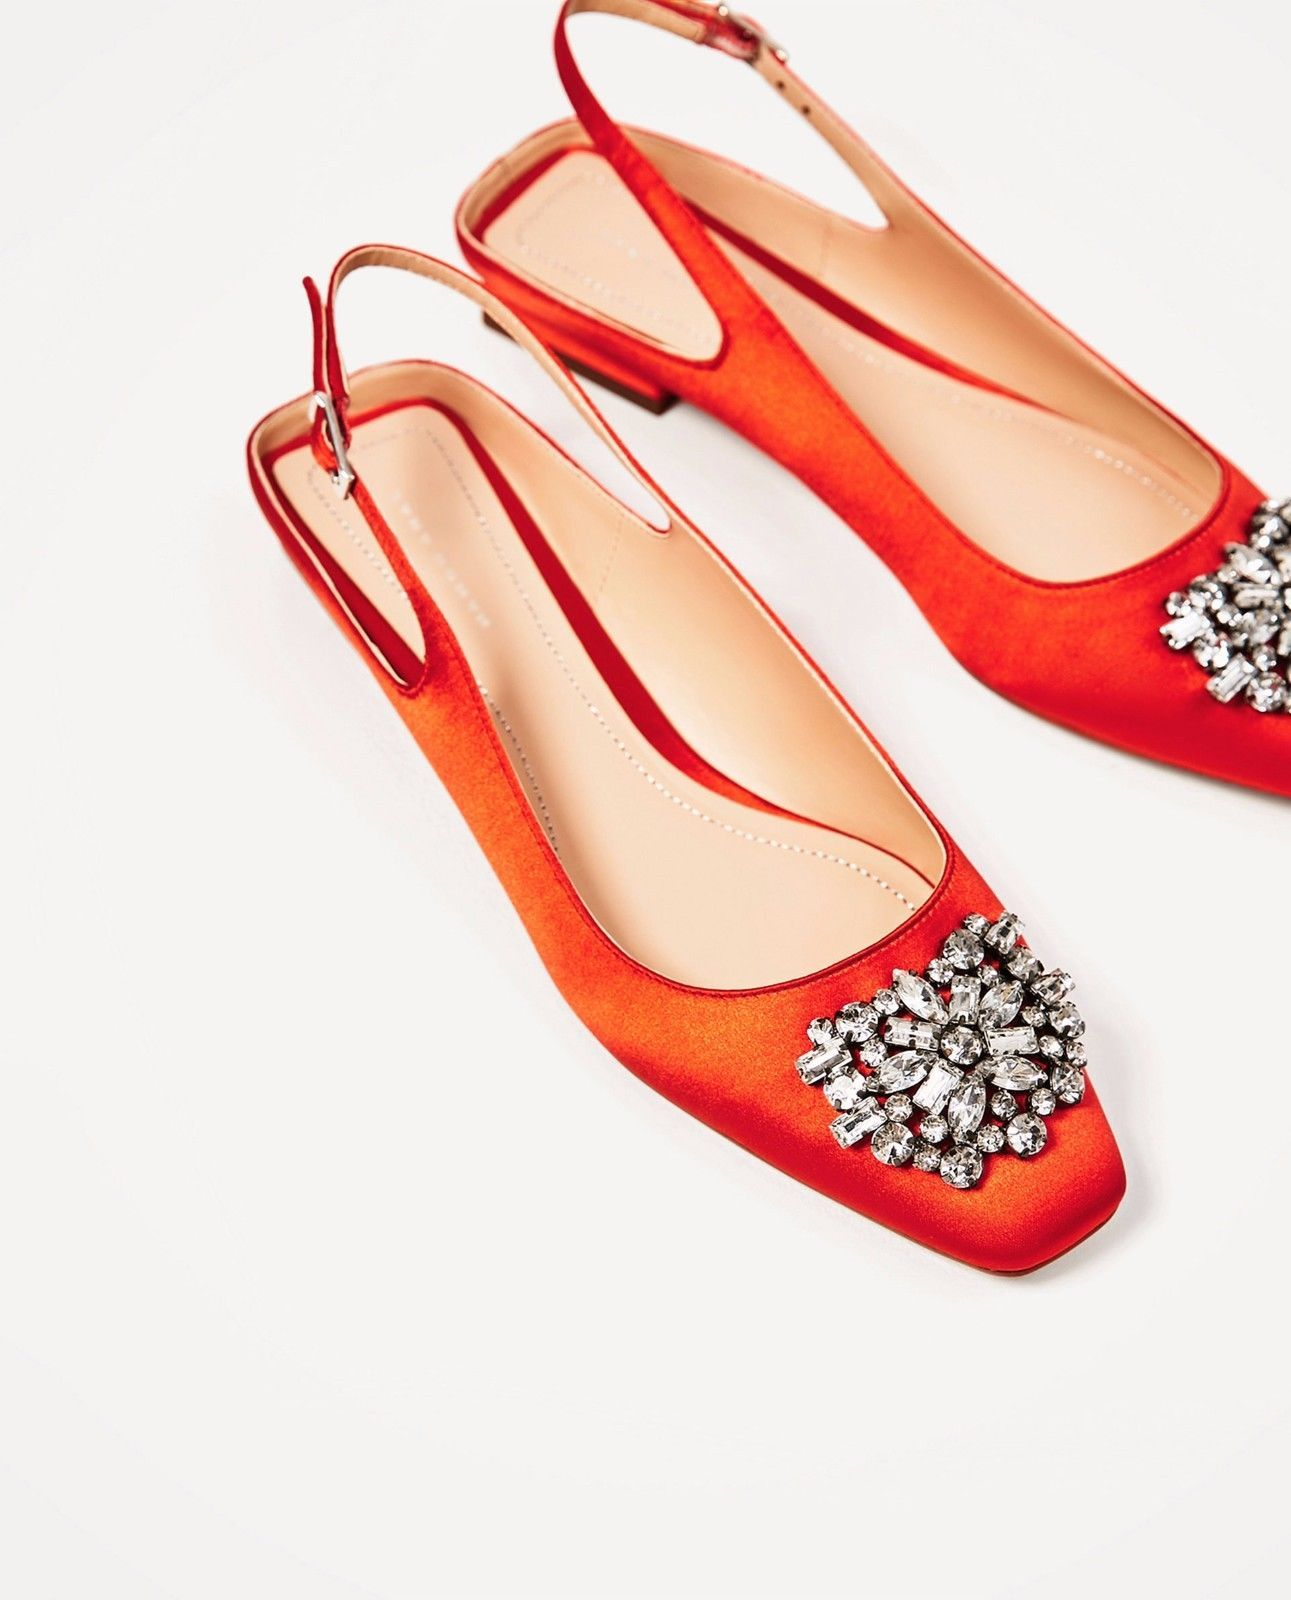 be42231704d Zara Ss17 Flat Slingback Shoes With Beaded Detail Orange 1352 201 ...